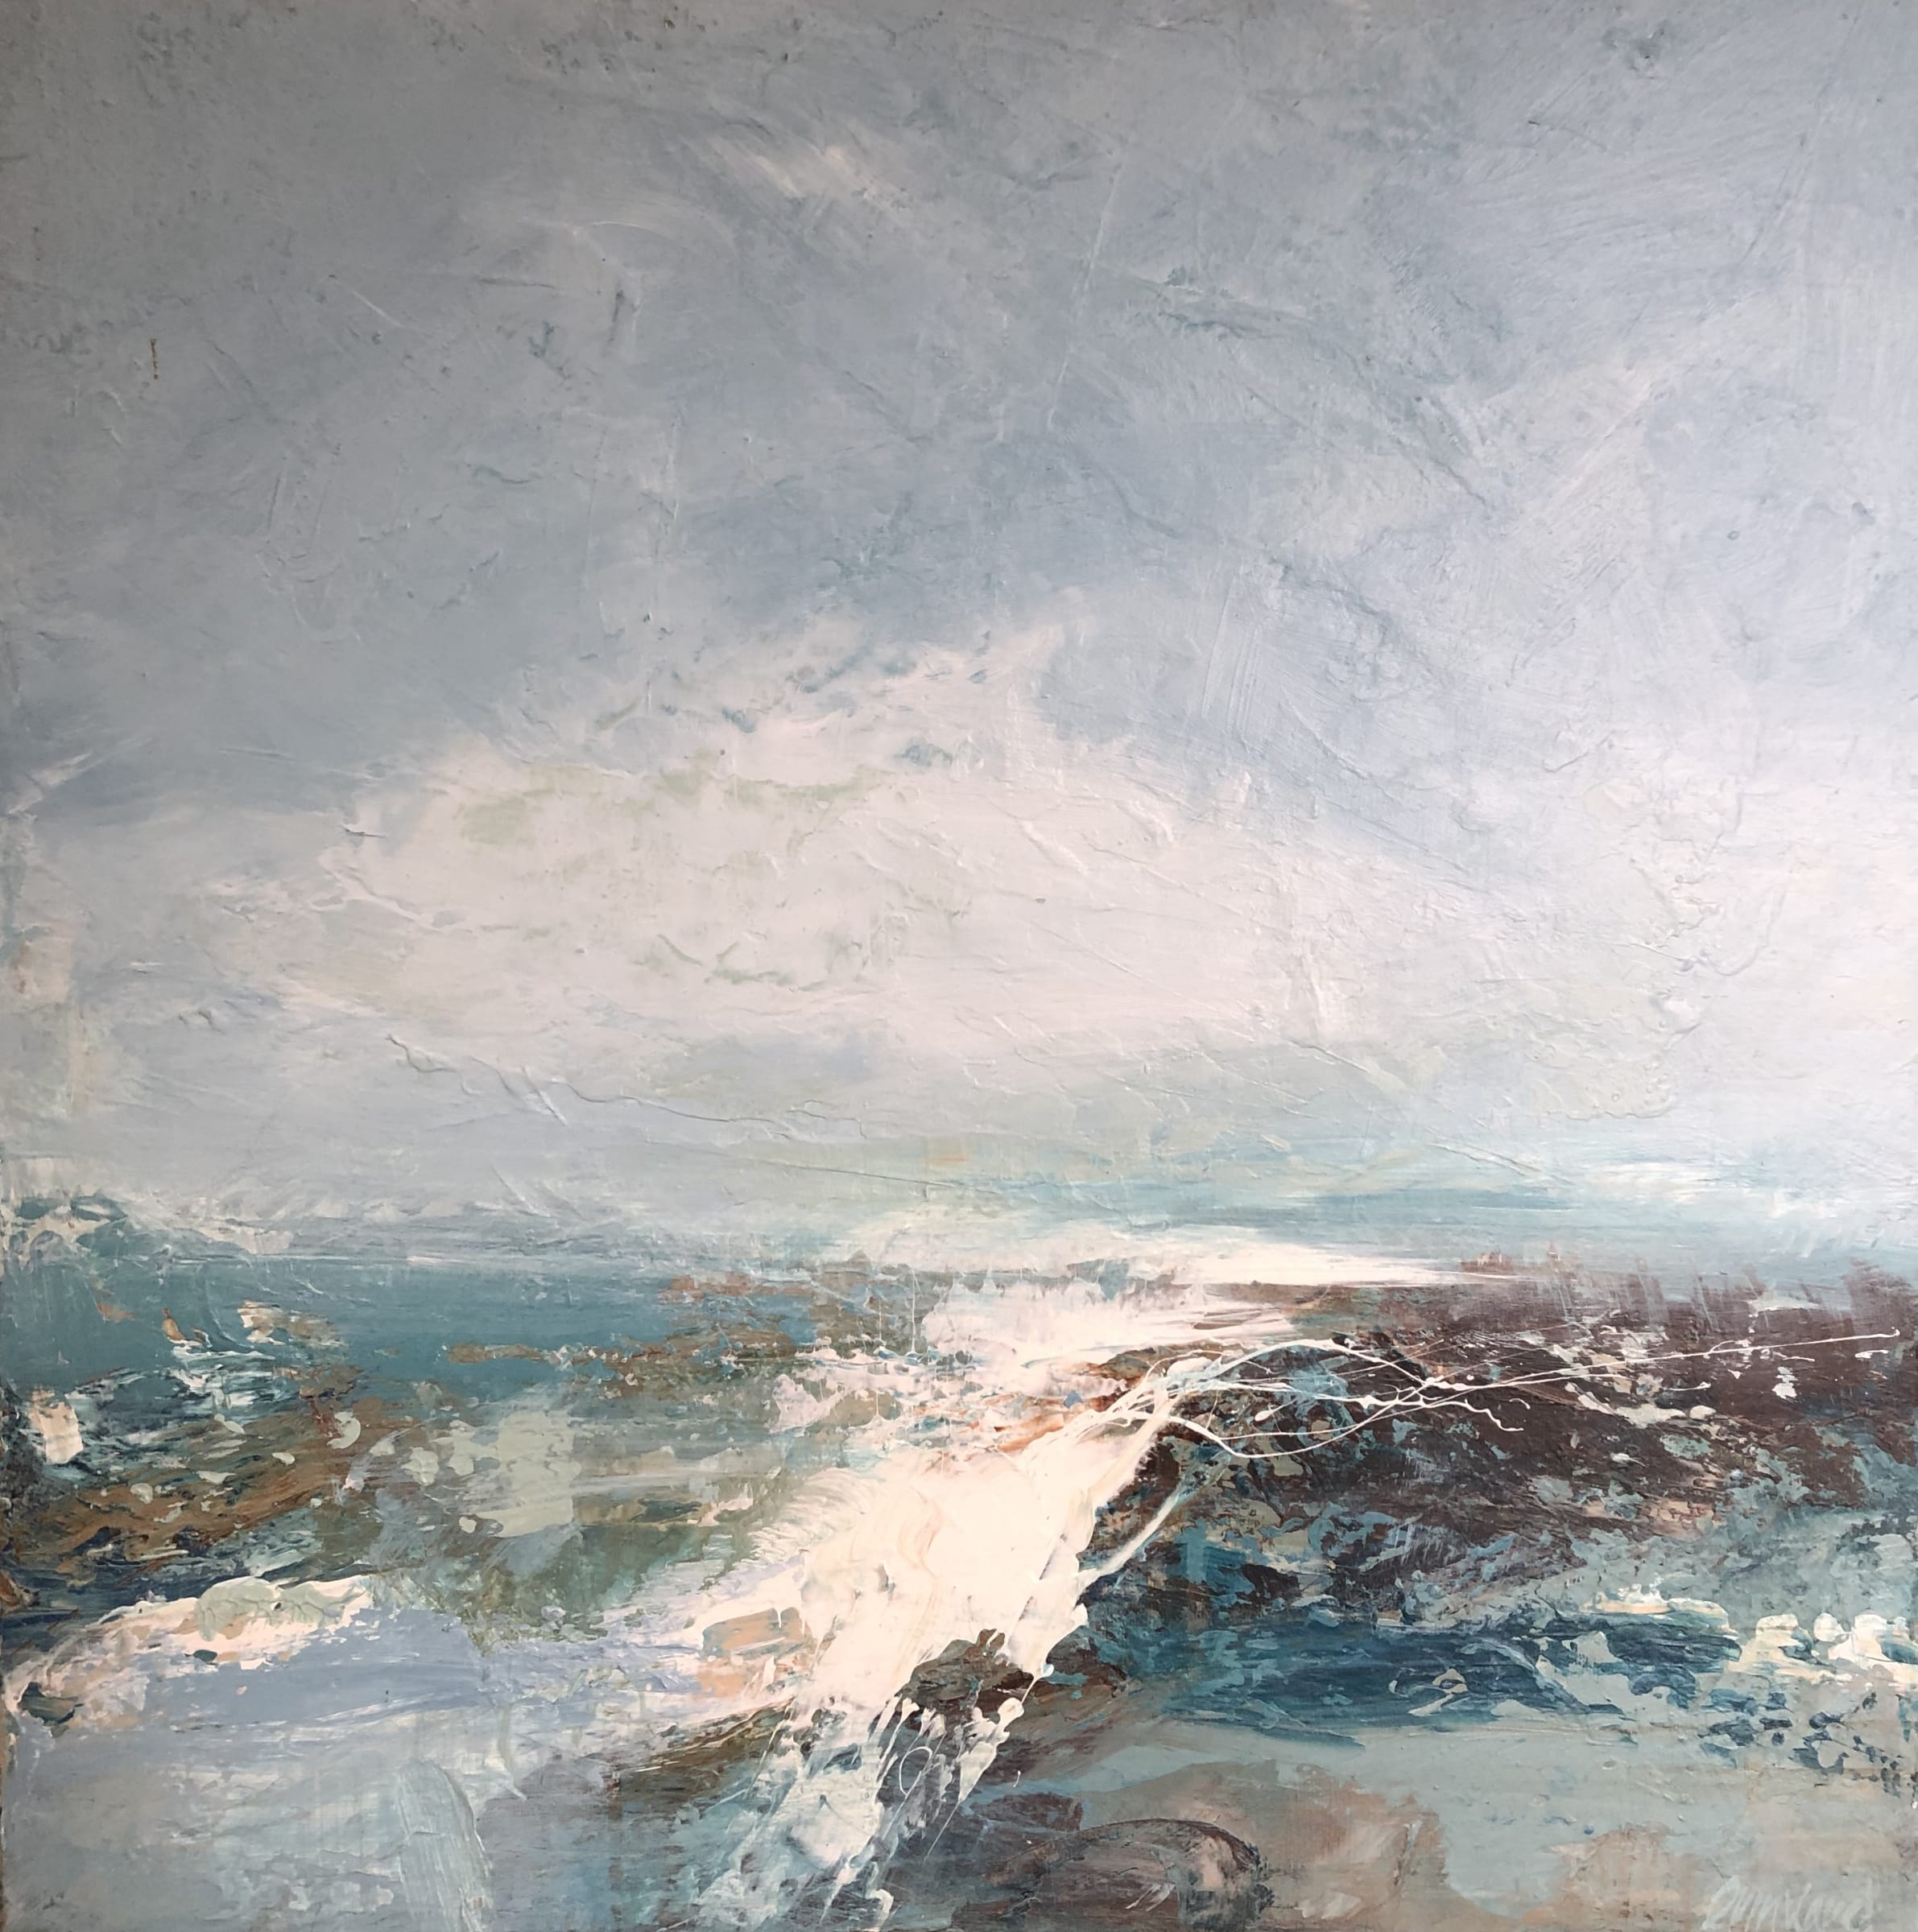 "<span class=""link fancybox-details-link""><a href=""/artists/41-erin-ward/works/6490-erin-ward-evening-sea-2019/"">View Detail Page</a></span><div class=""artist""><strong>Erin Ward</strong></div> b. 1966 <div class=""title""><em>Evening Sea</em>, 2019</div> <div class=""signed_and_dated"">Signed, titled and dated</div> <div class=""medium"">acrylic on canvas</div> <div class=""dimensions"">20 x 20 inches</div><div class=""price"">£1,080.00</div><div class=""copyright_line"">Copyright The Artist</div>"